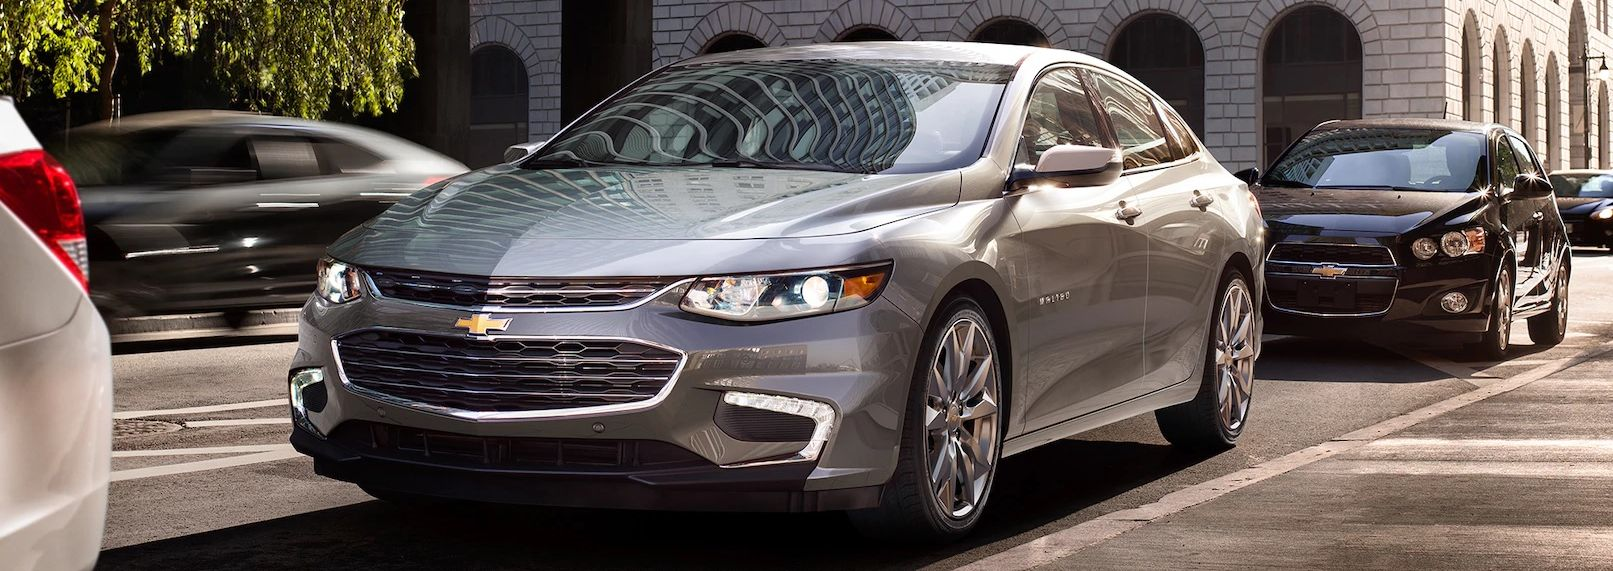 2018 Chevrolet Malibu vs 2018 Honda Accord near Valparaiso, IN